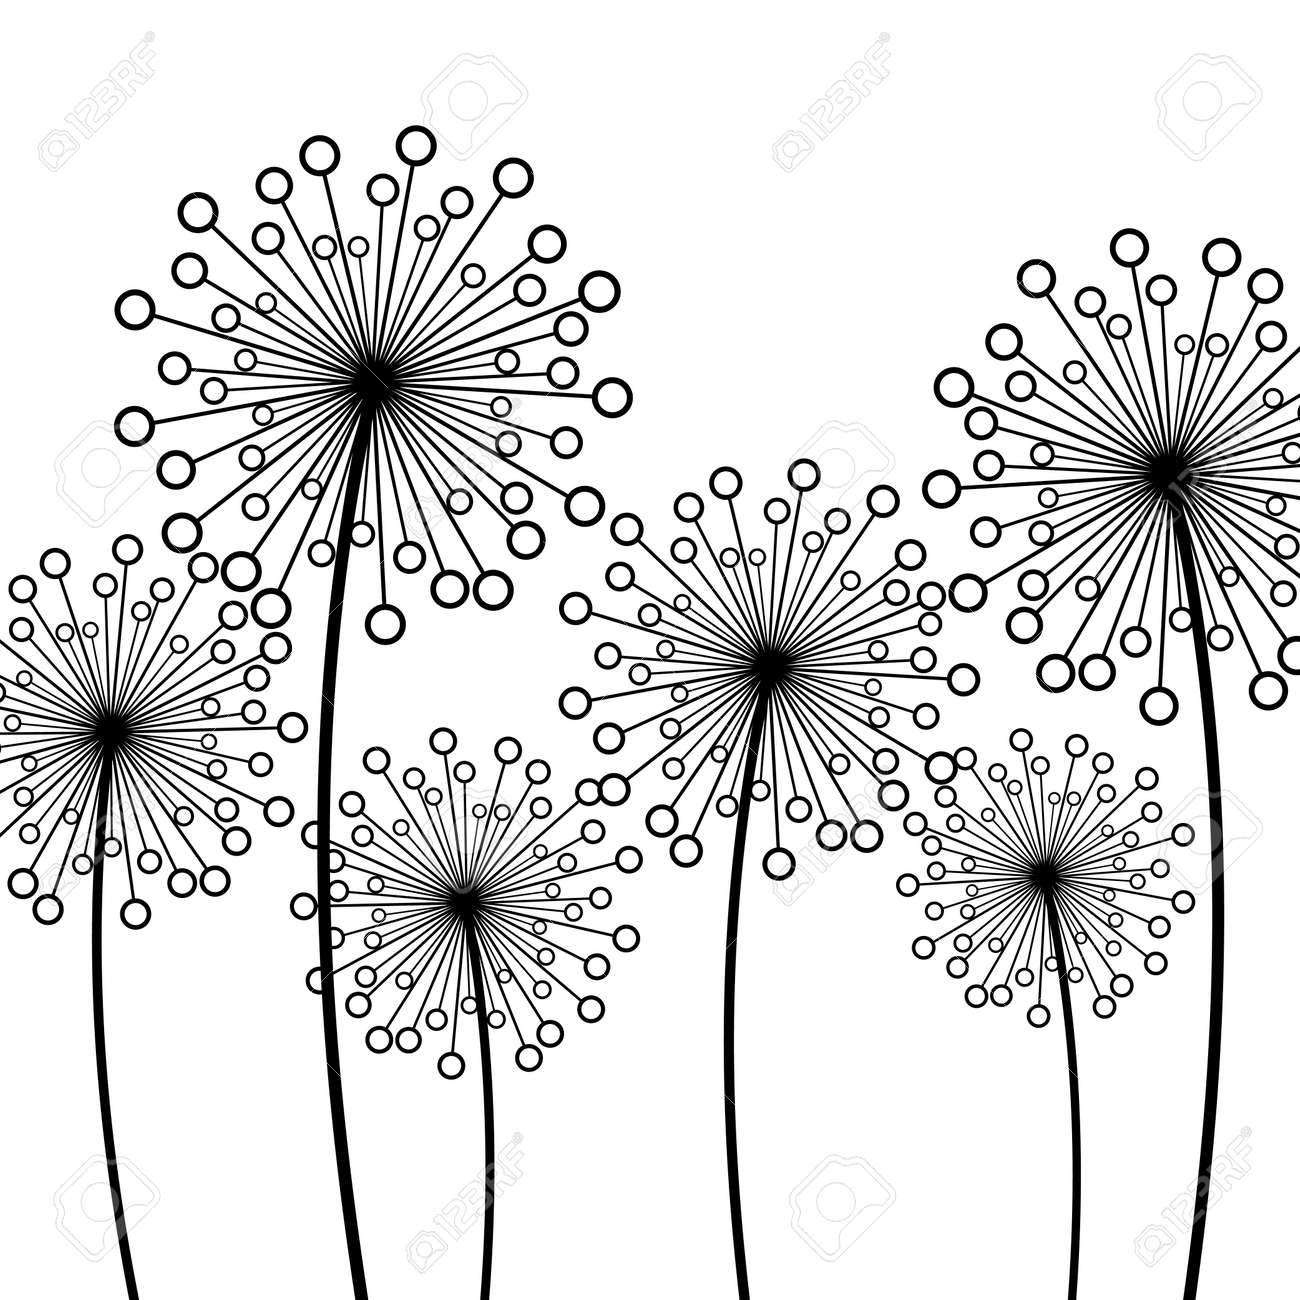 Abstract White Background With Black Stylized Decorative Dandelions Floral Stylish Trendy Wallpaper Summer Or